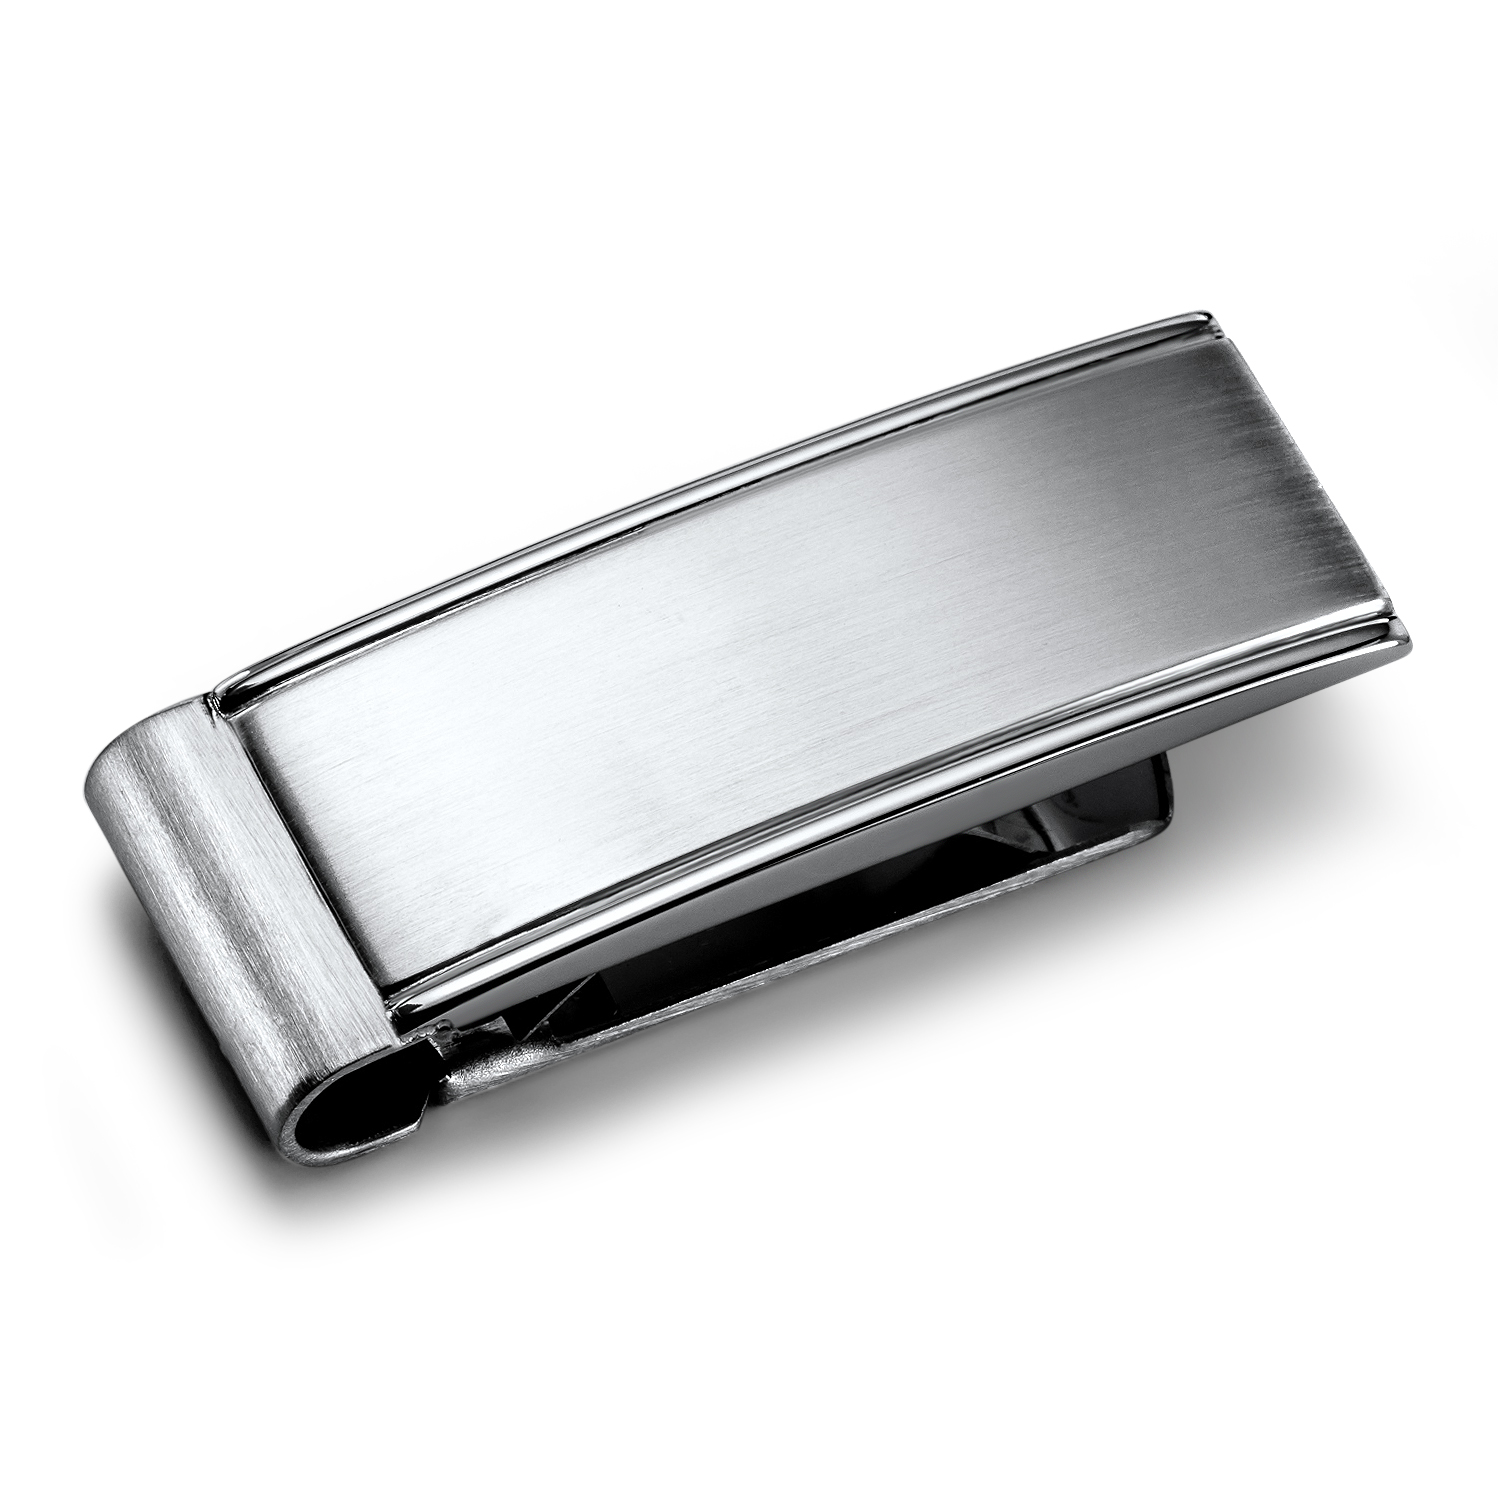 Stainless Steel Brushed & Polished Money Clip